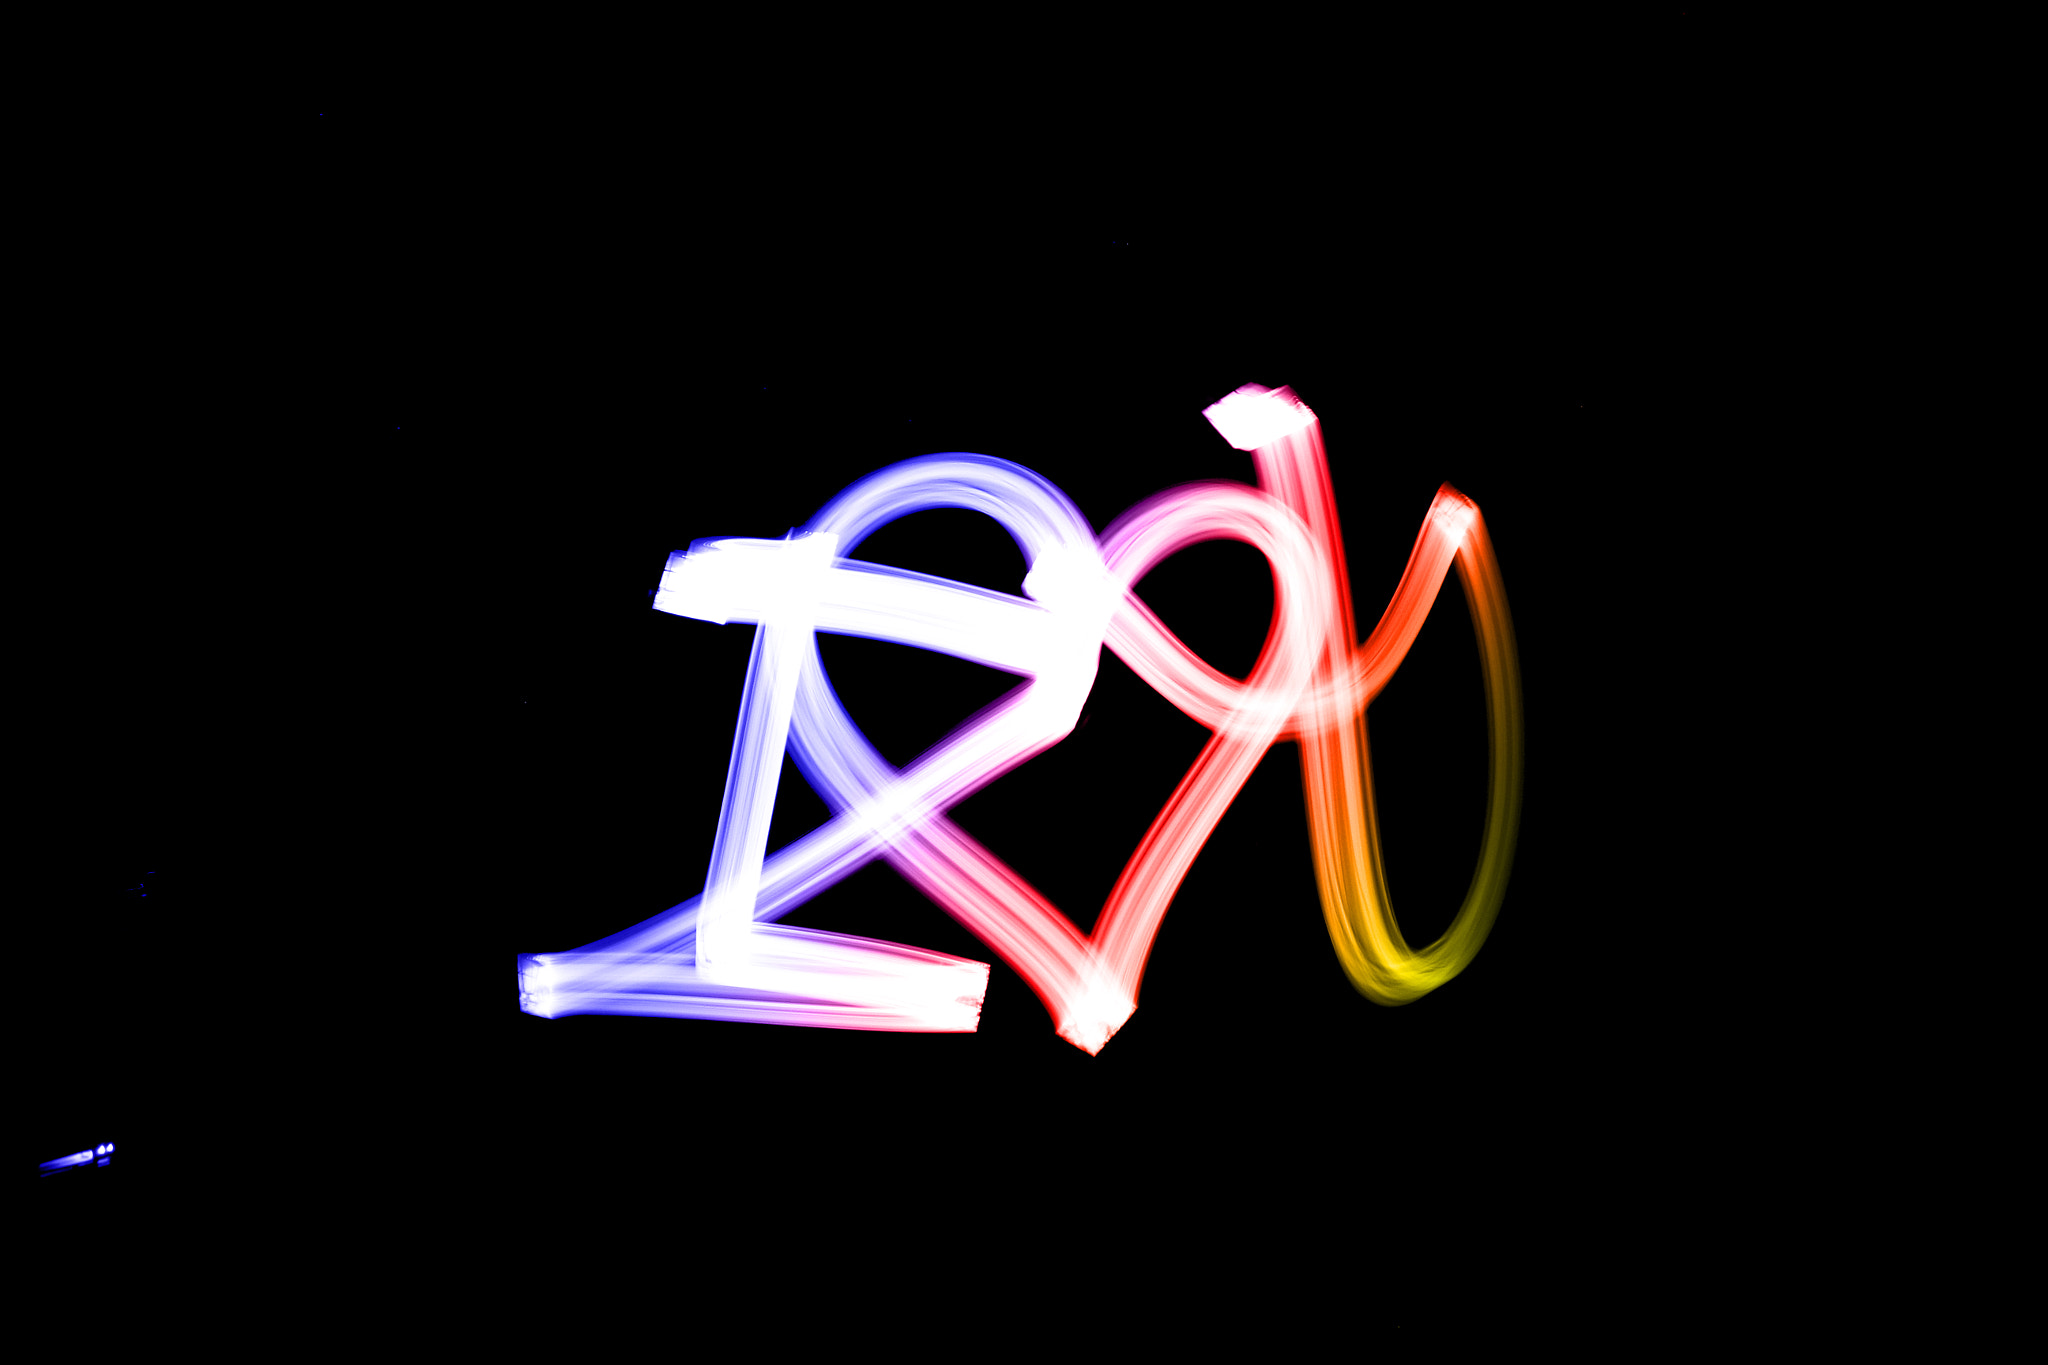 Photograph Lightpainting for my love by Tomás De Bona on 500px